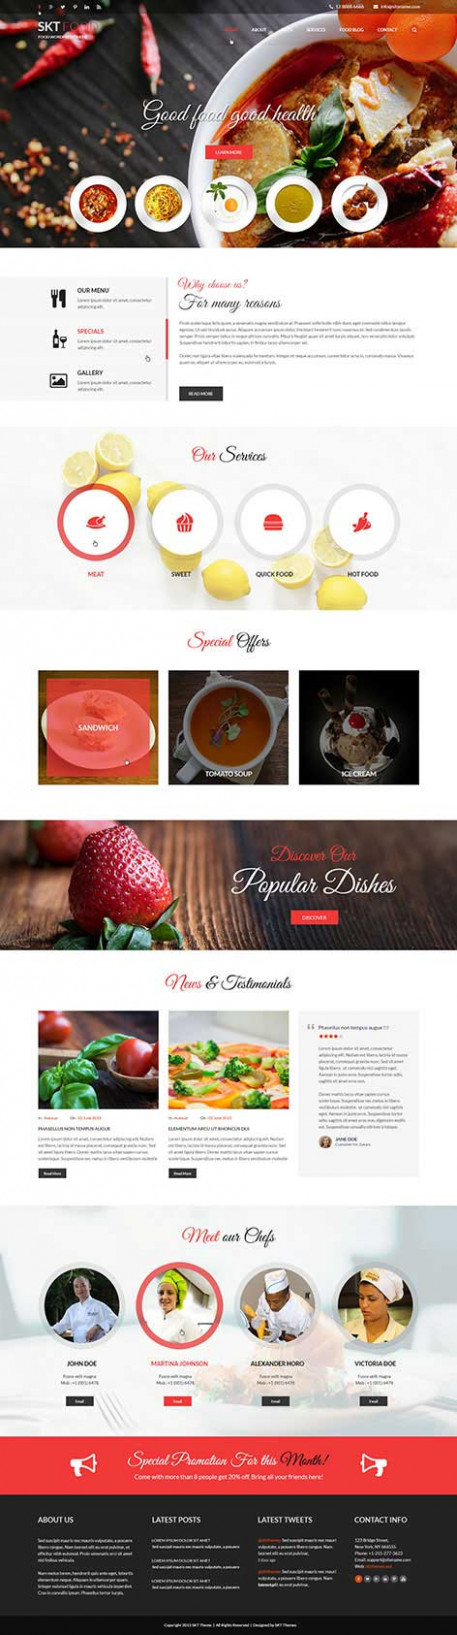 Food And Recipes WordPress Theme For Food Blogging And ..